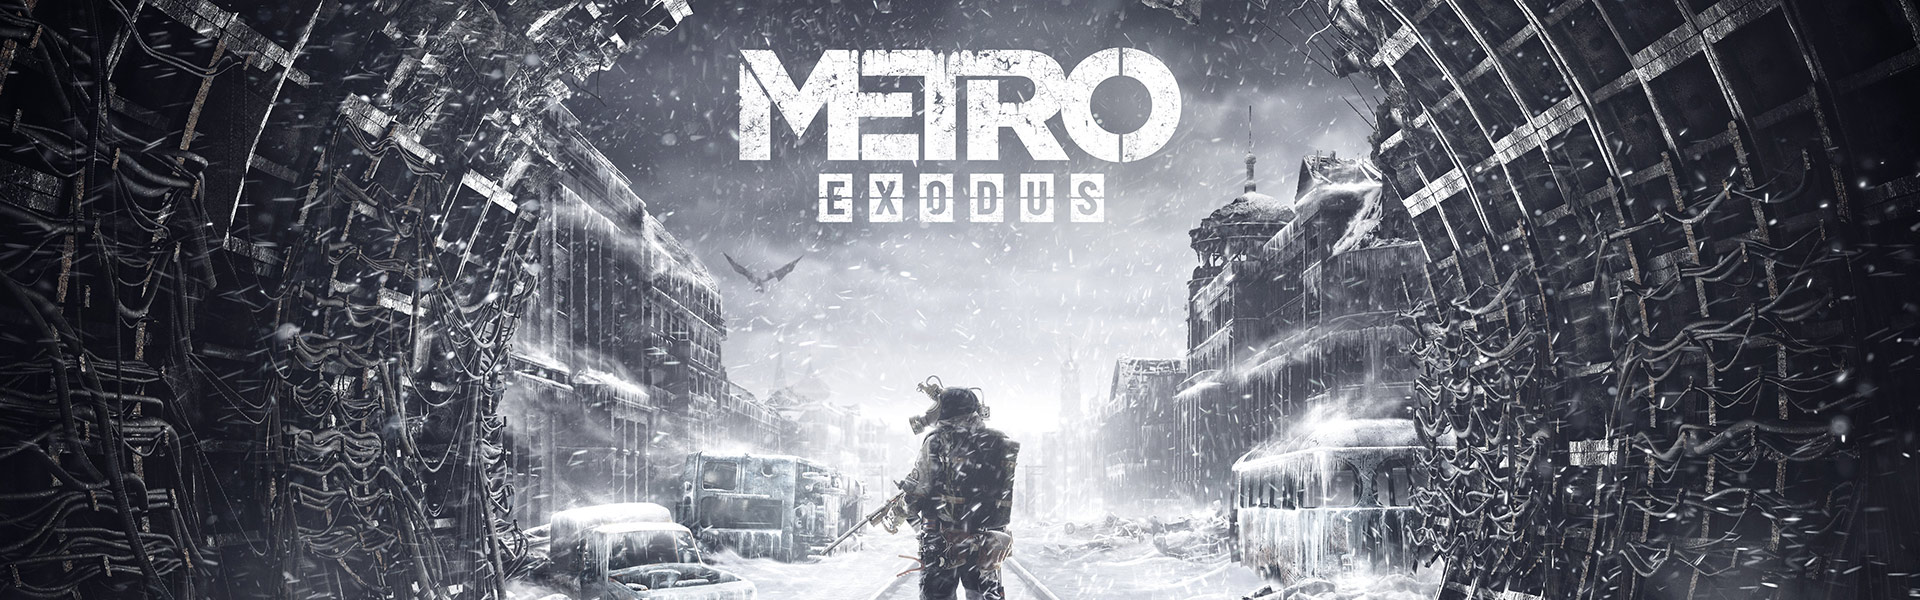 Metro Exodus, A man holding a gun stands on snow covered tracks in a tunnel